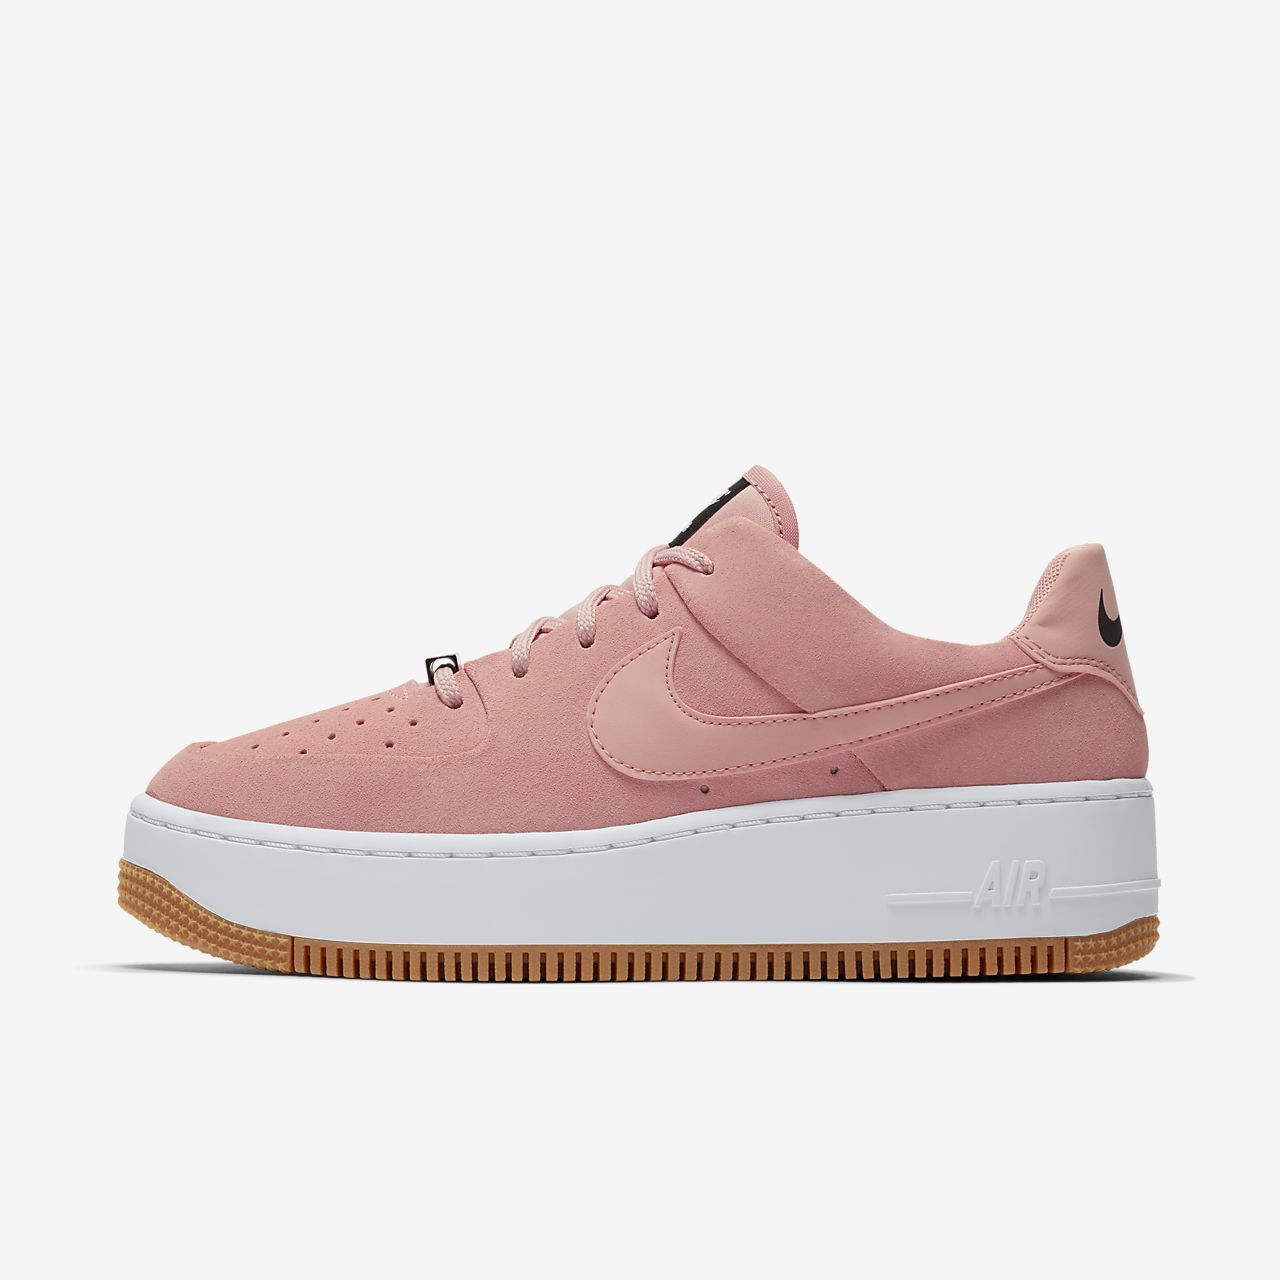 Nike Air Force 1 Sage Low 女鞋